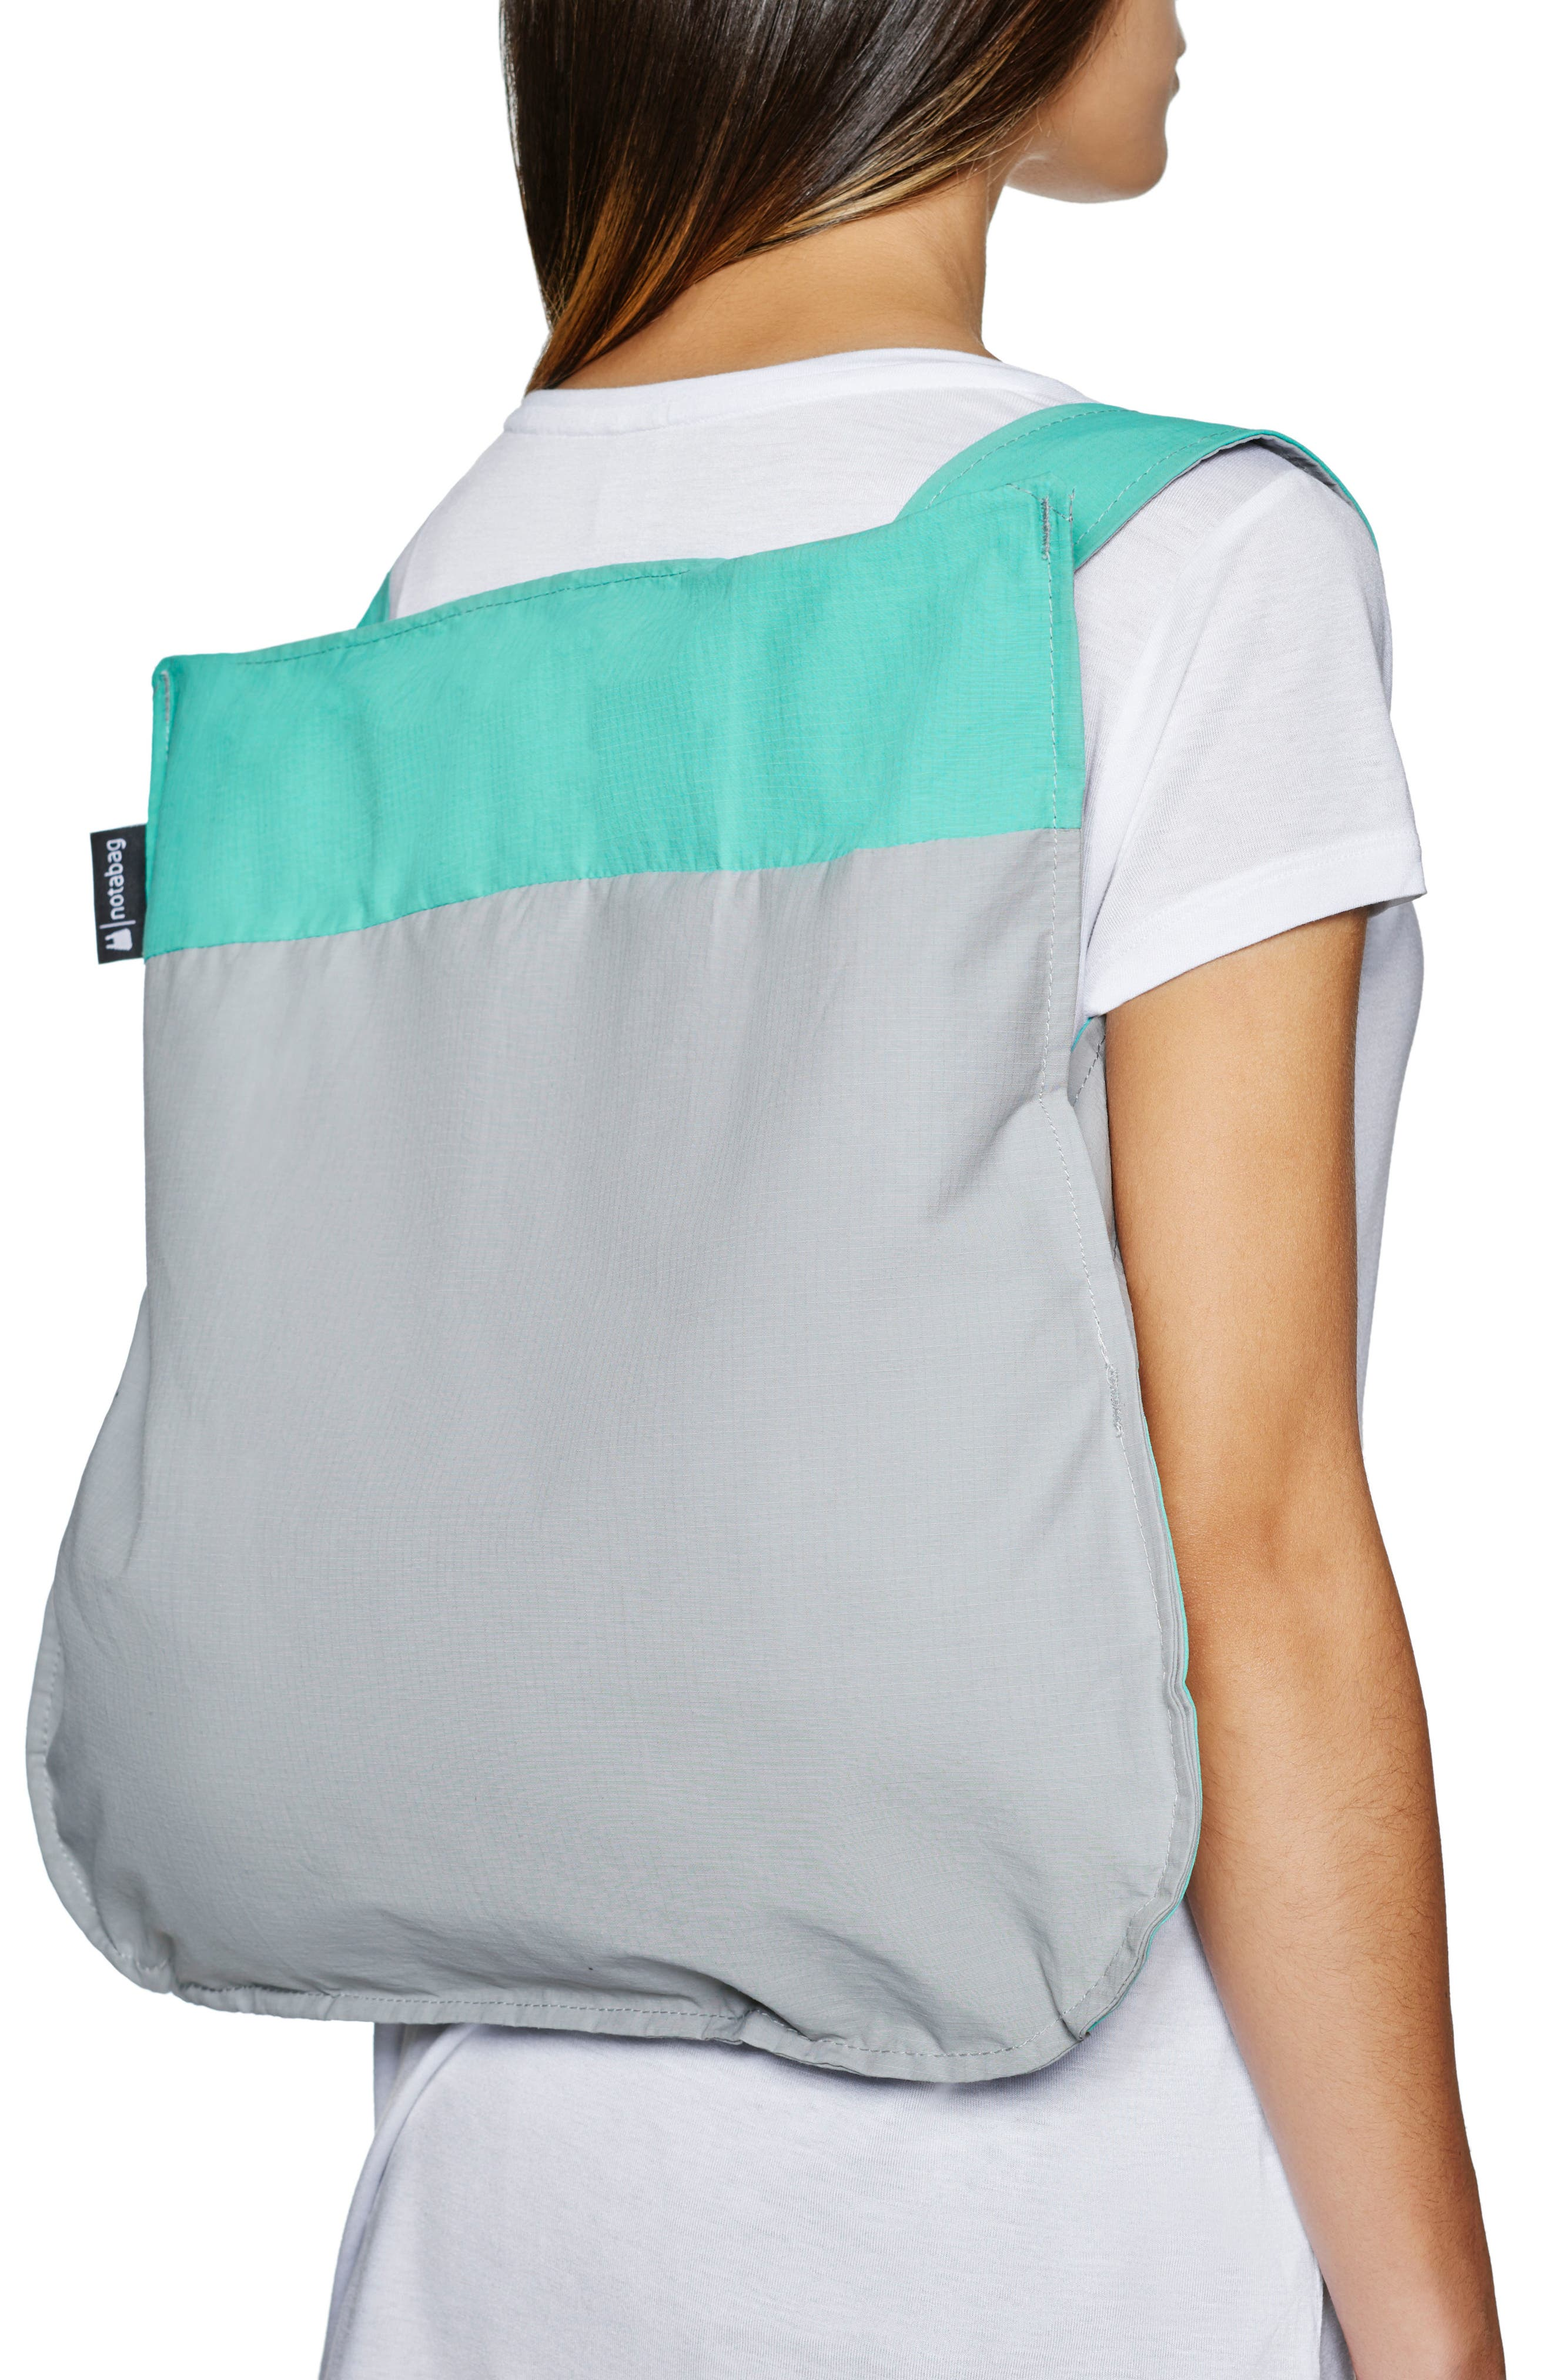 NOTABAG,                             Convertible Tote Backpack,                             Alternate thumbnail 2, color,                             MINT/ GREY